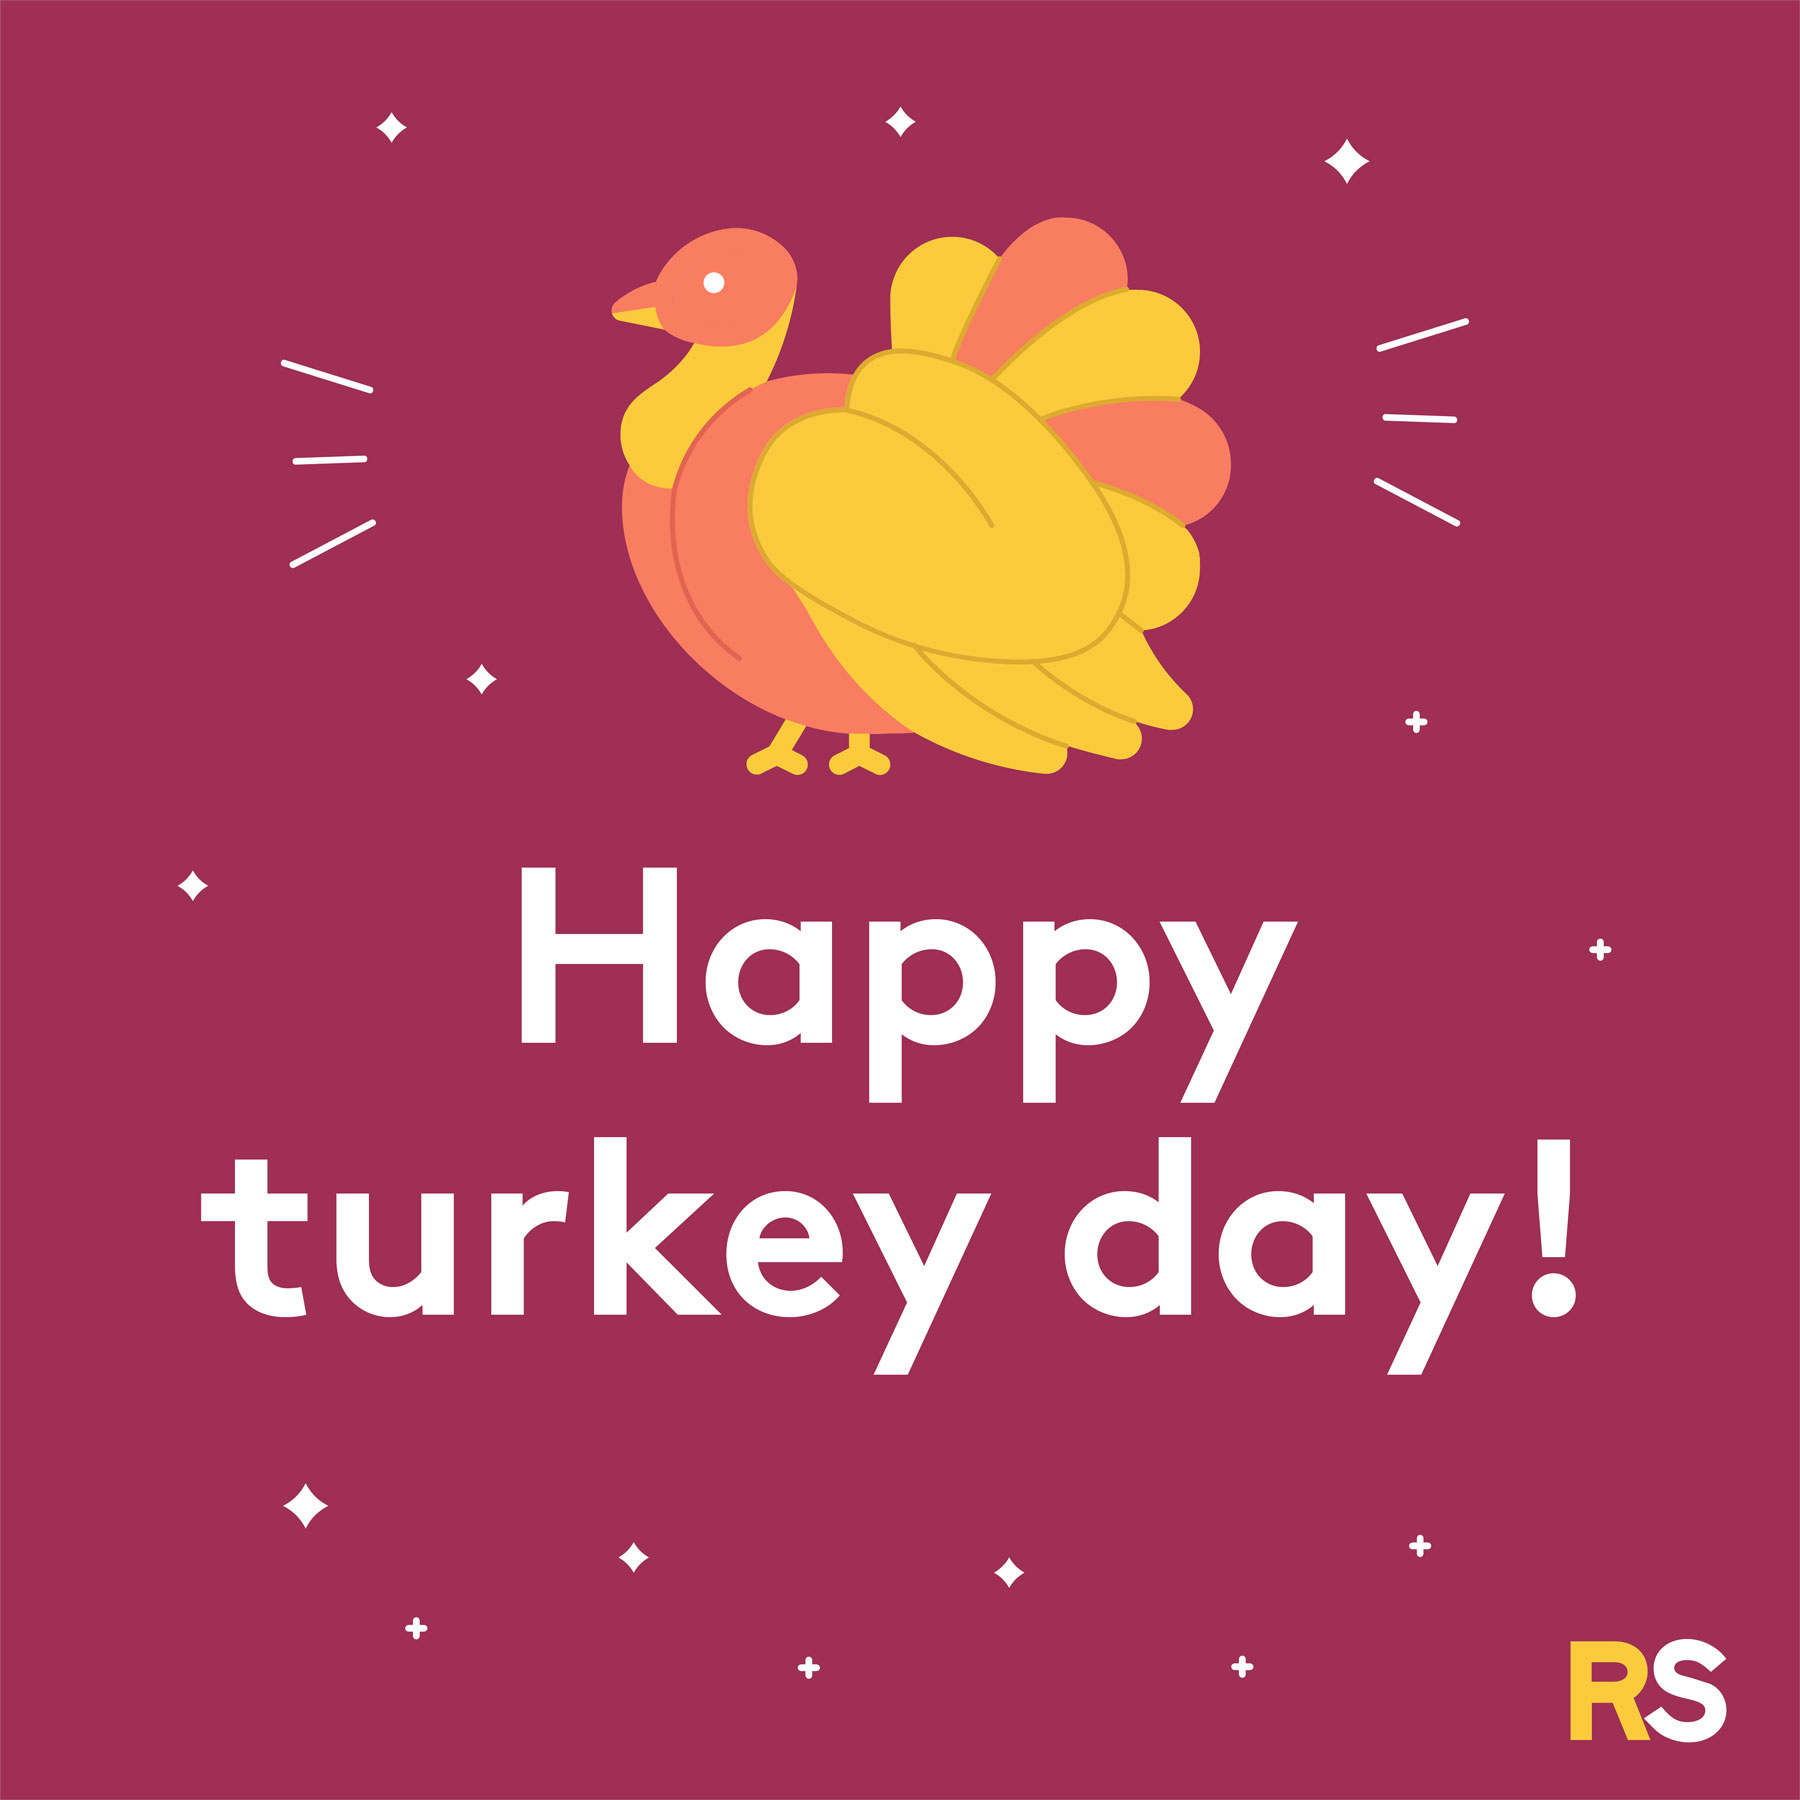 Thanksgiving wishes, messages, captions - text